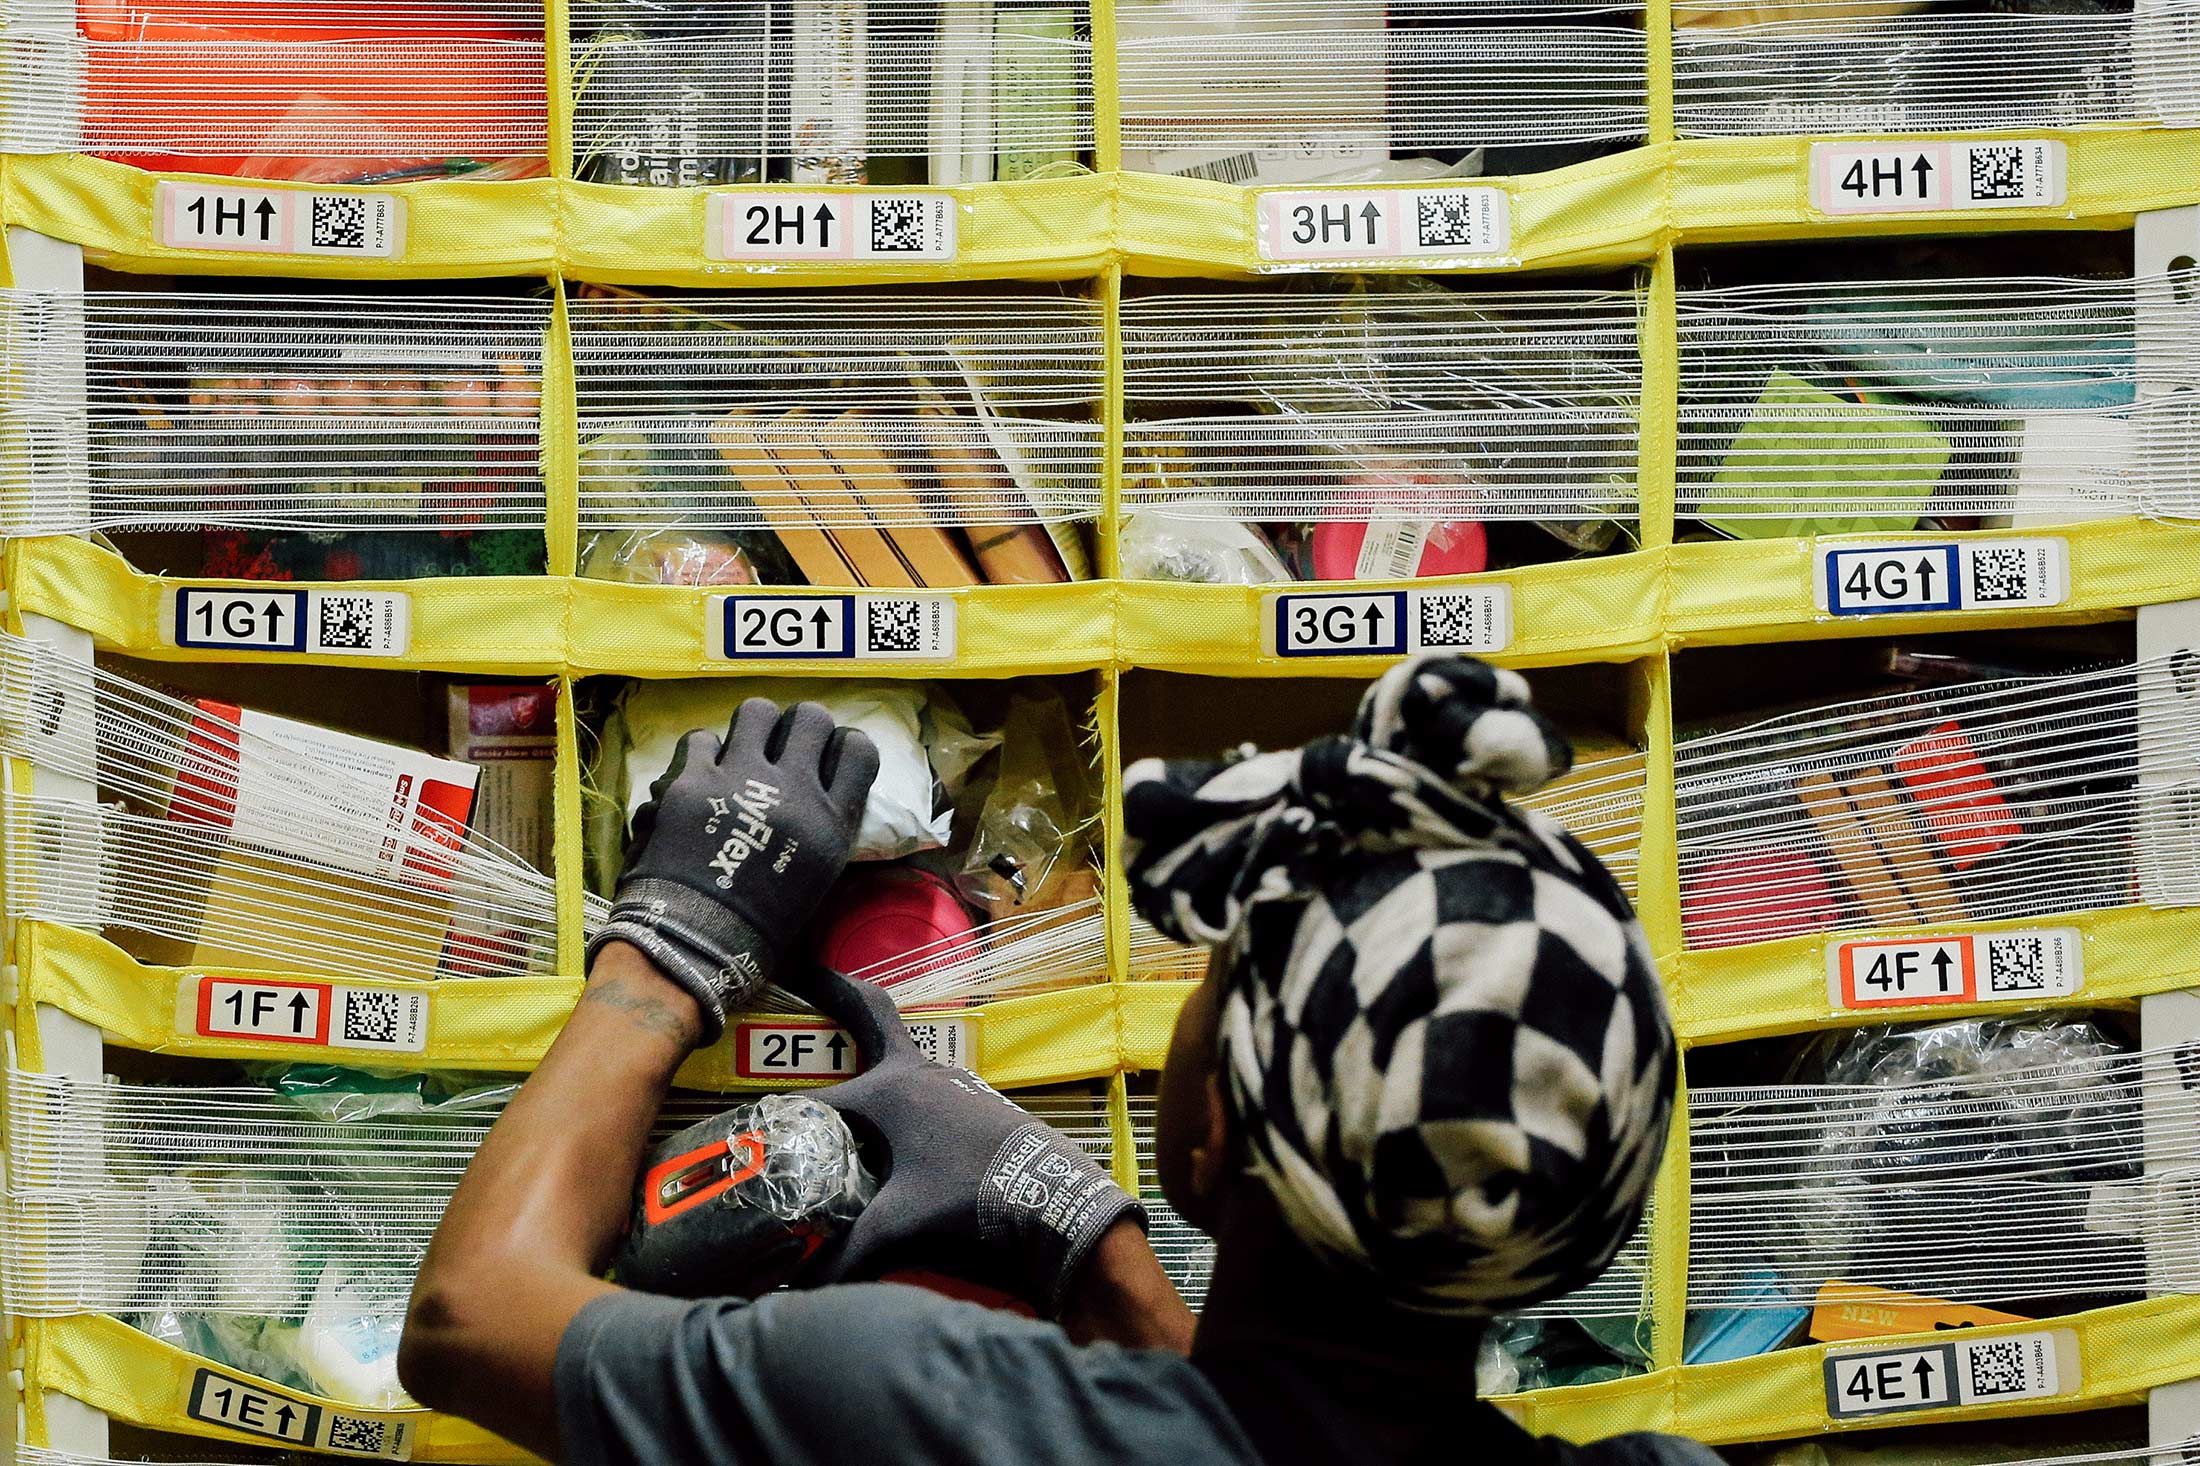 A worker sorts products into bins inside an Amazon Fulfillment Center.